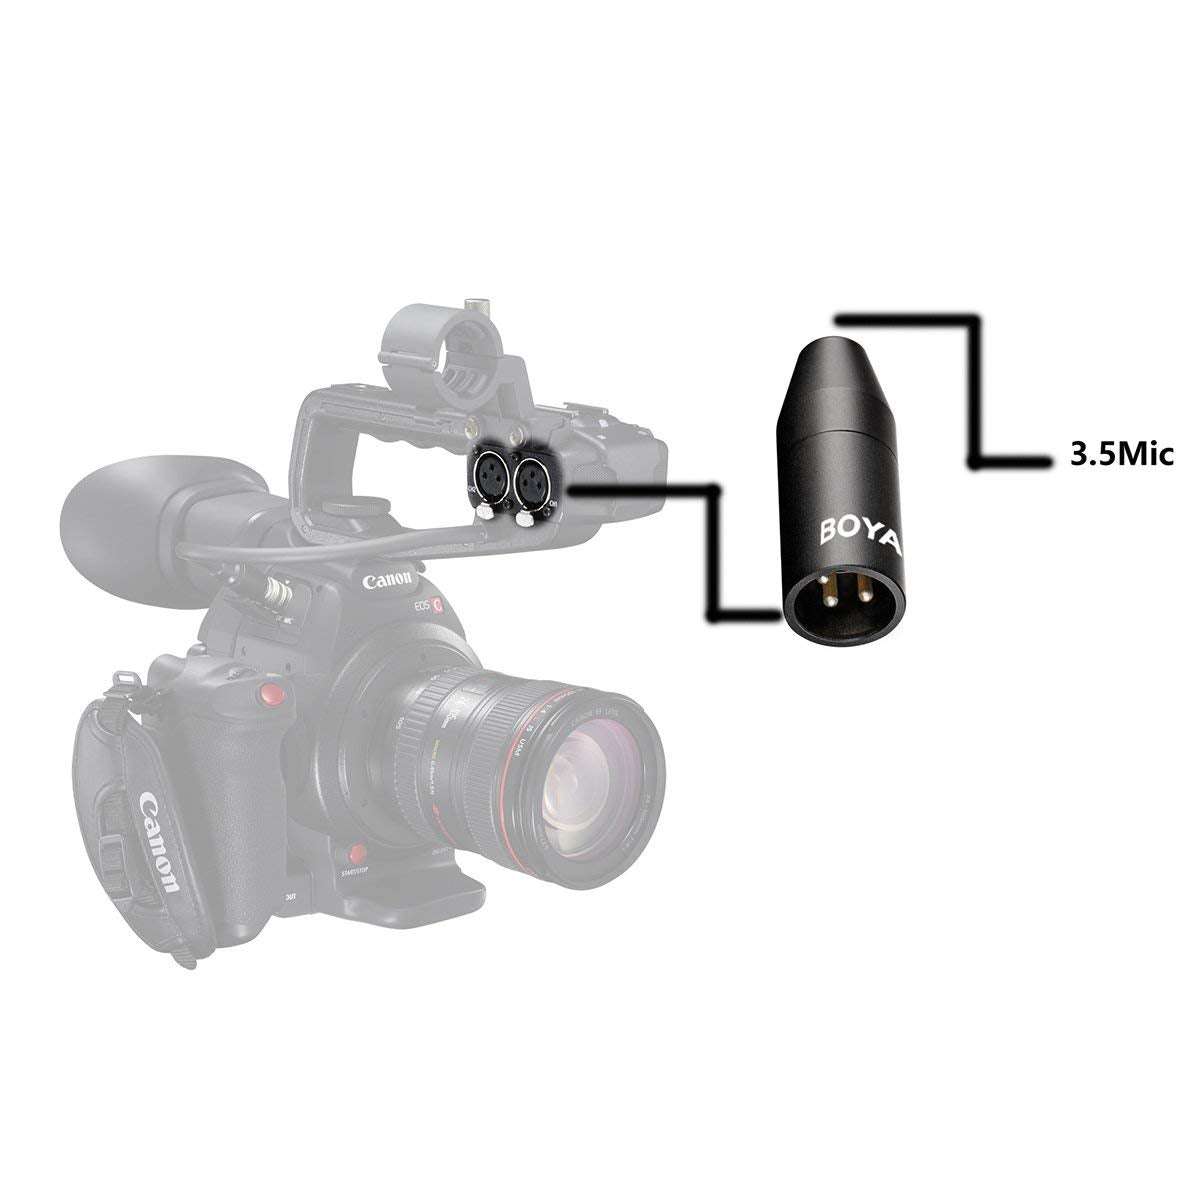 """BOYA 35C-XLR 3.5mm (TRS) Mini-Jack Female Microphone Adapter to 3-pin XLR Male Connector for Camcorders, Recorders, Mixers """